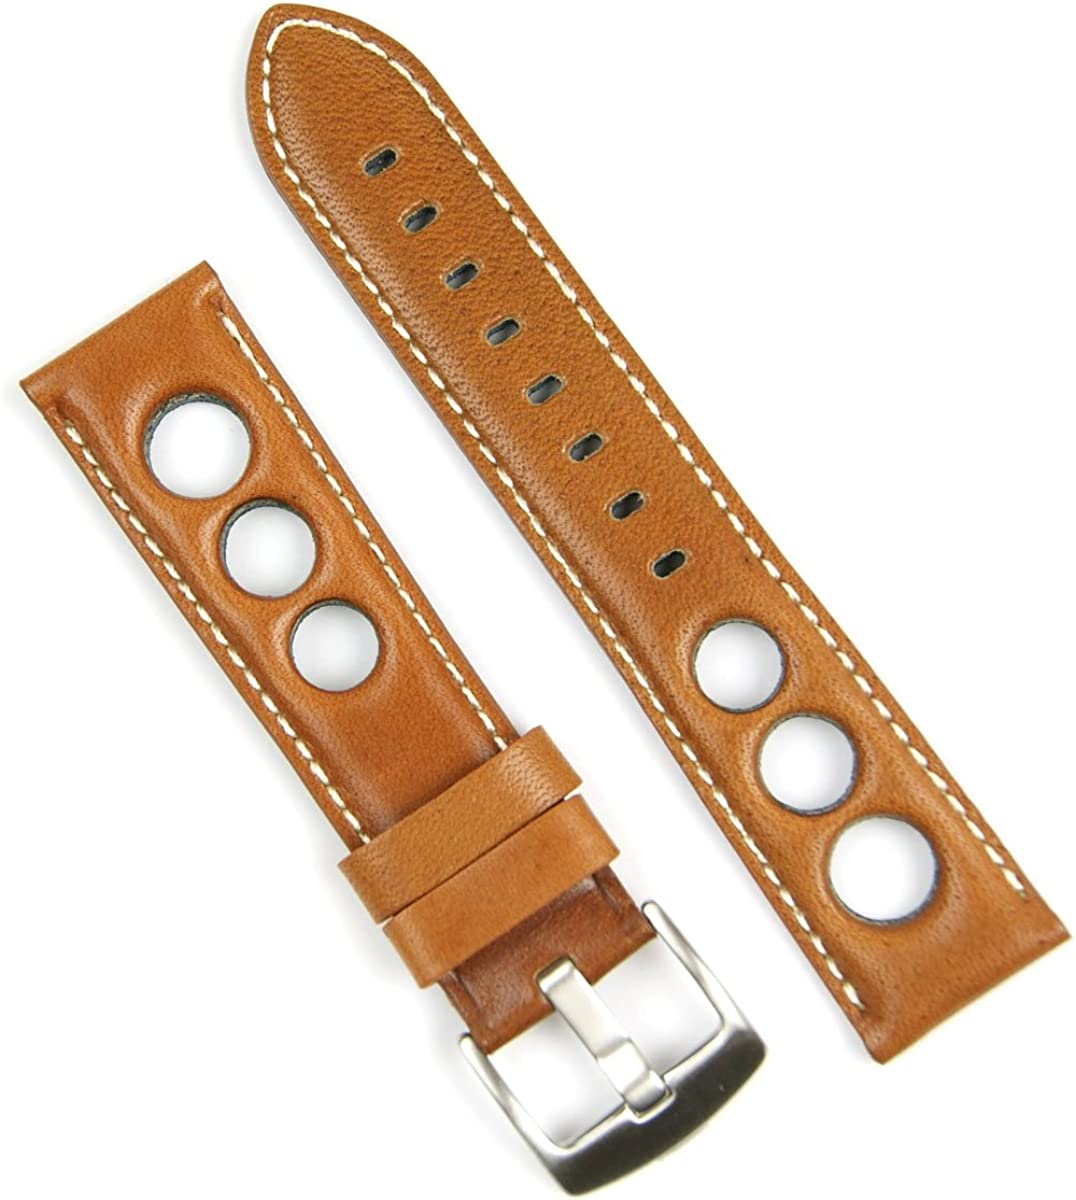 B R Bands 20mm Tan Horween Watch NEW before selling ☆ Leather Rallye Strap Band Popular products Whi